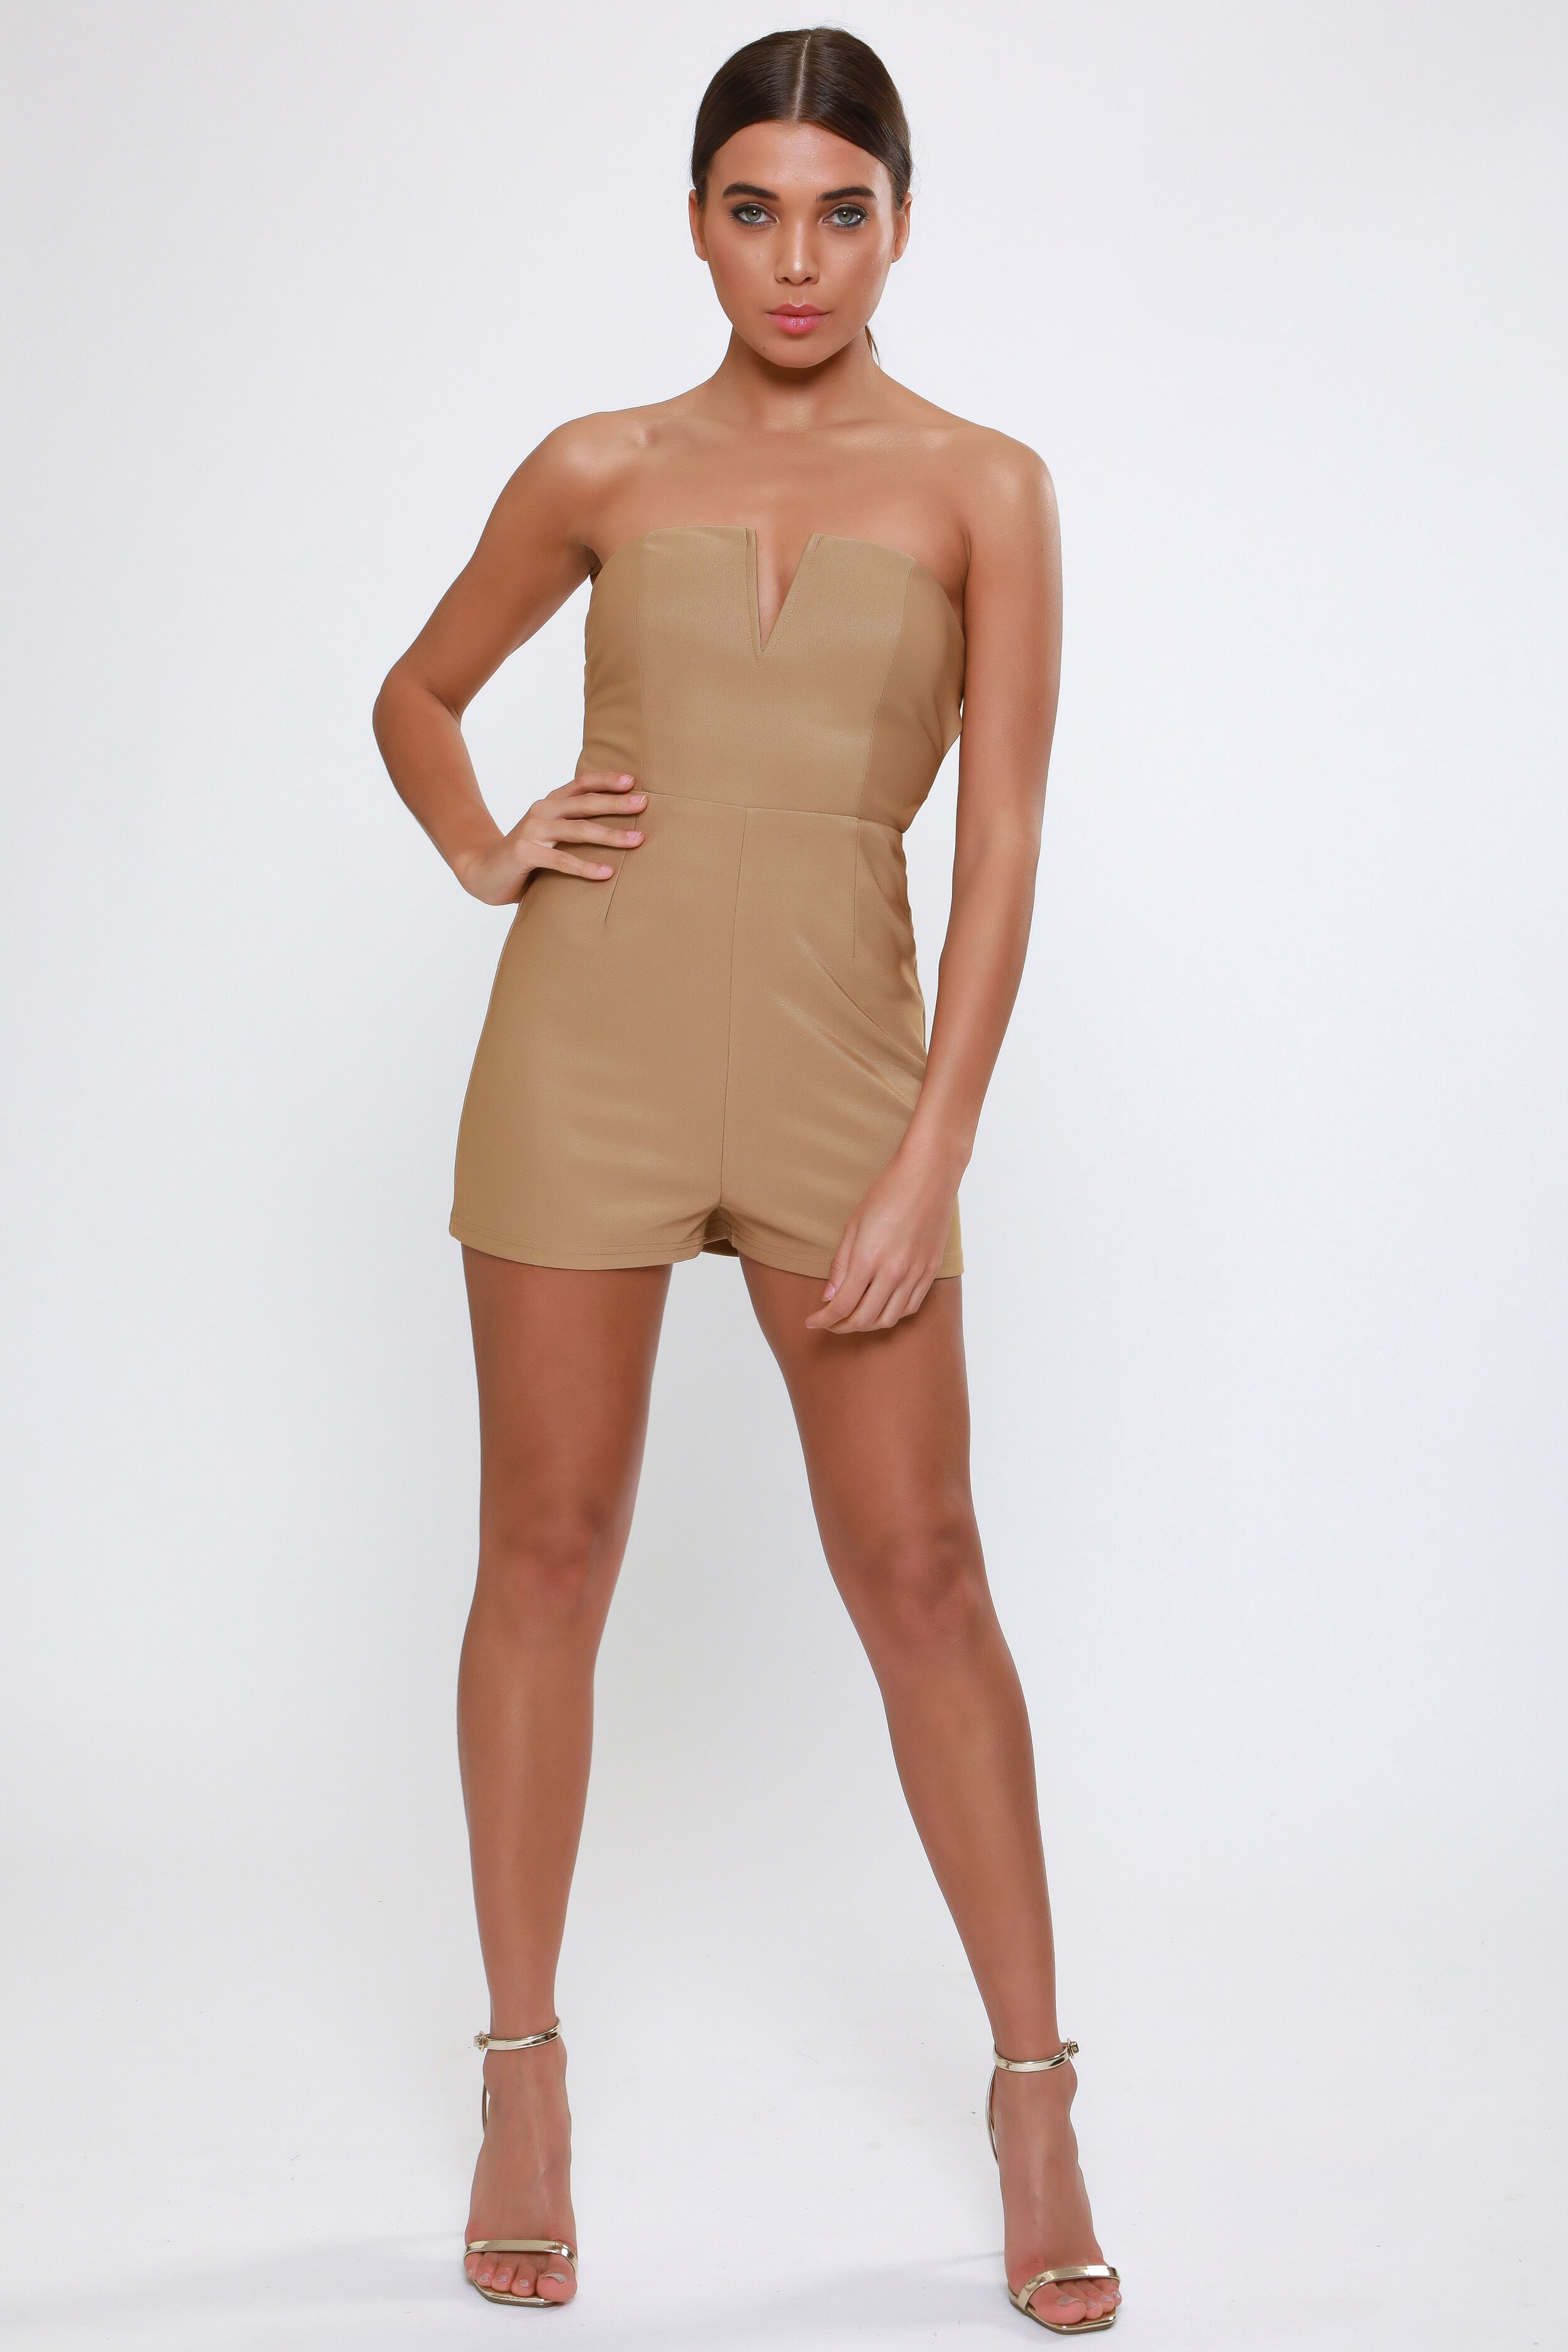 Plunge Playsuit with  Gold Hardware   £55.00